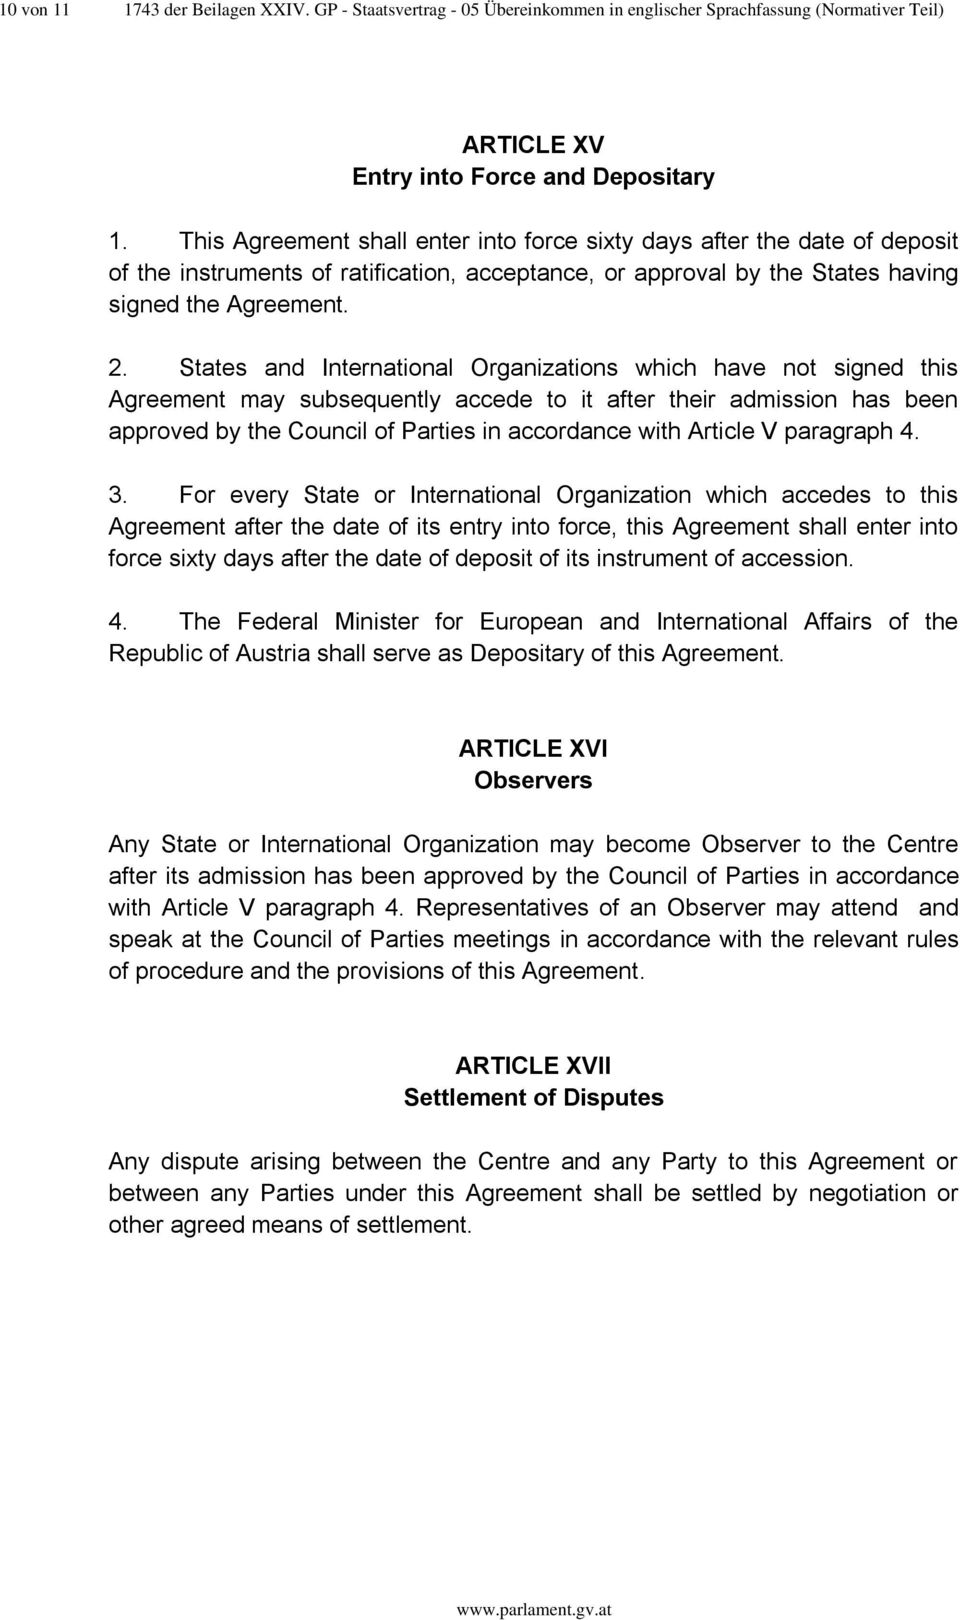 States and International Organizations which have not signed this Agreement may subsequently accede to it after their admission has been approved by the Council of Parties in accordance with Article